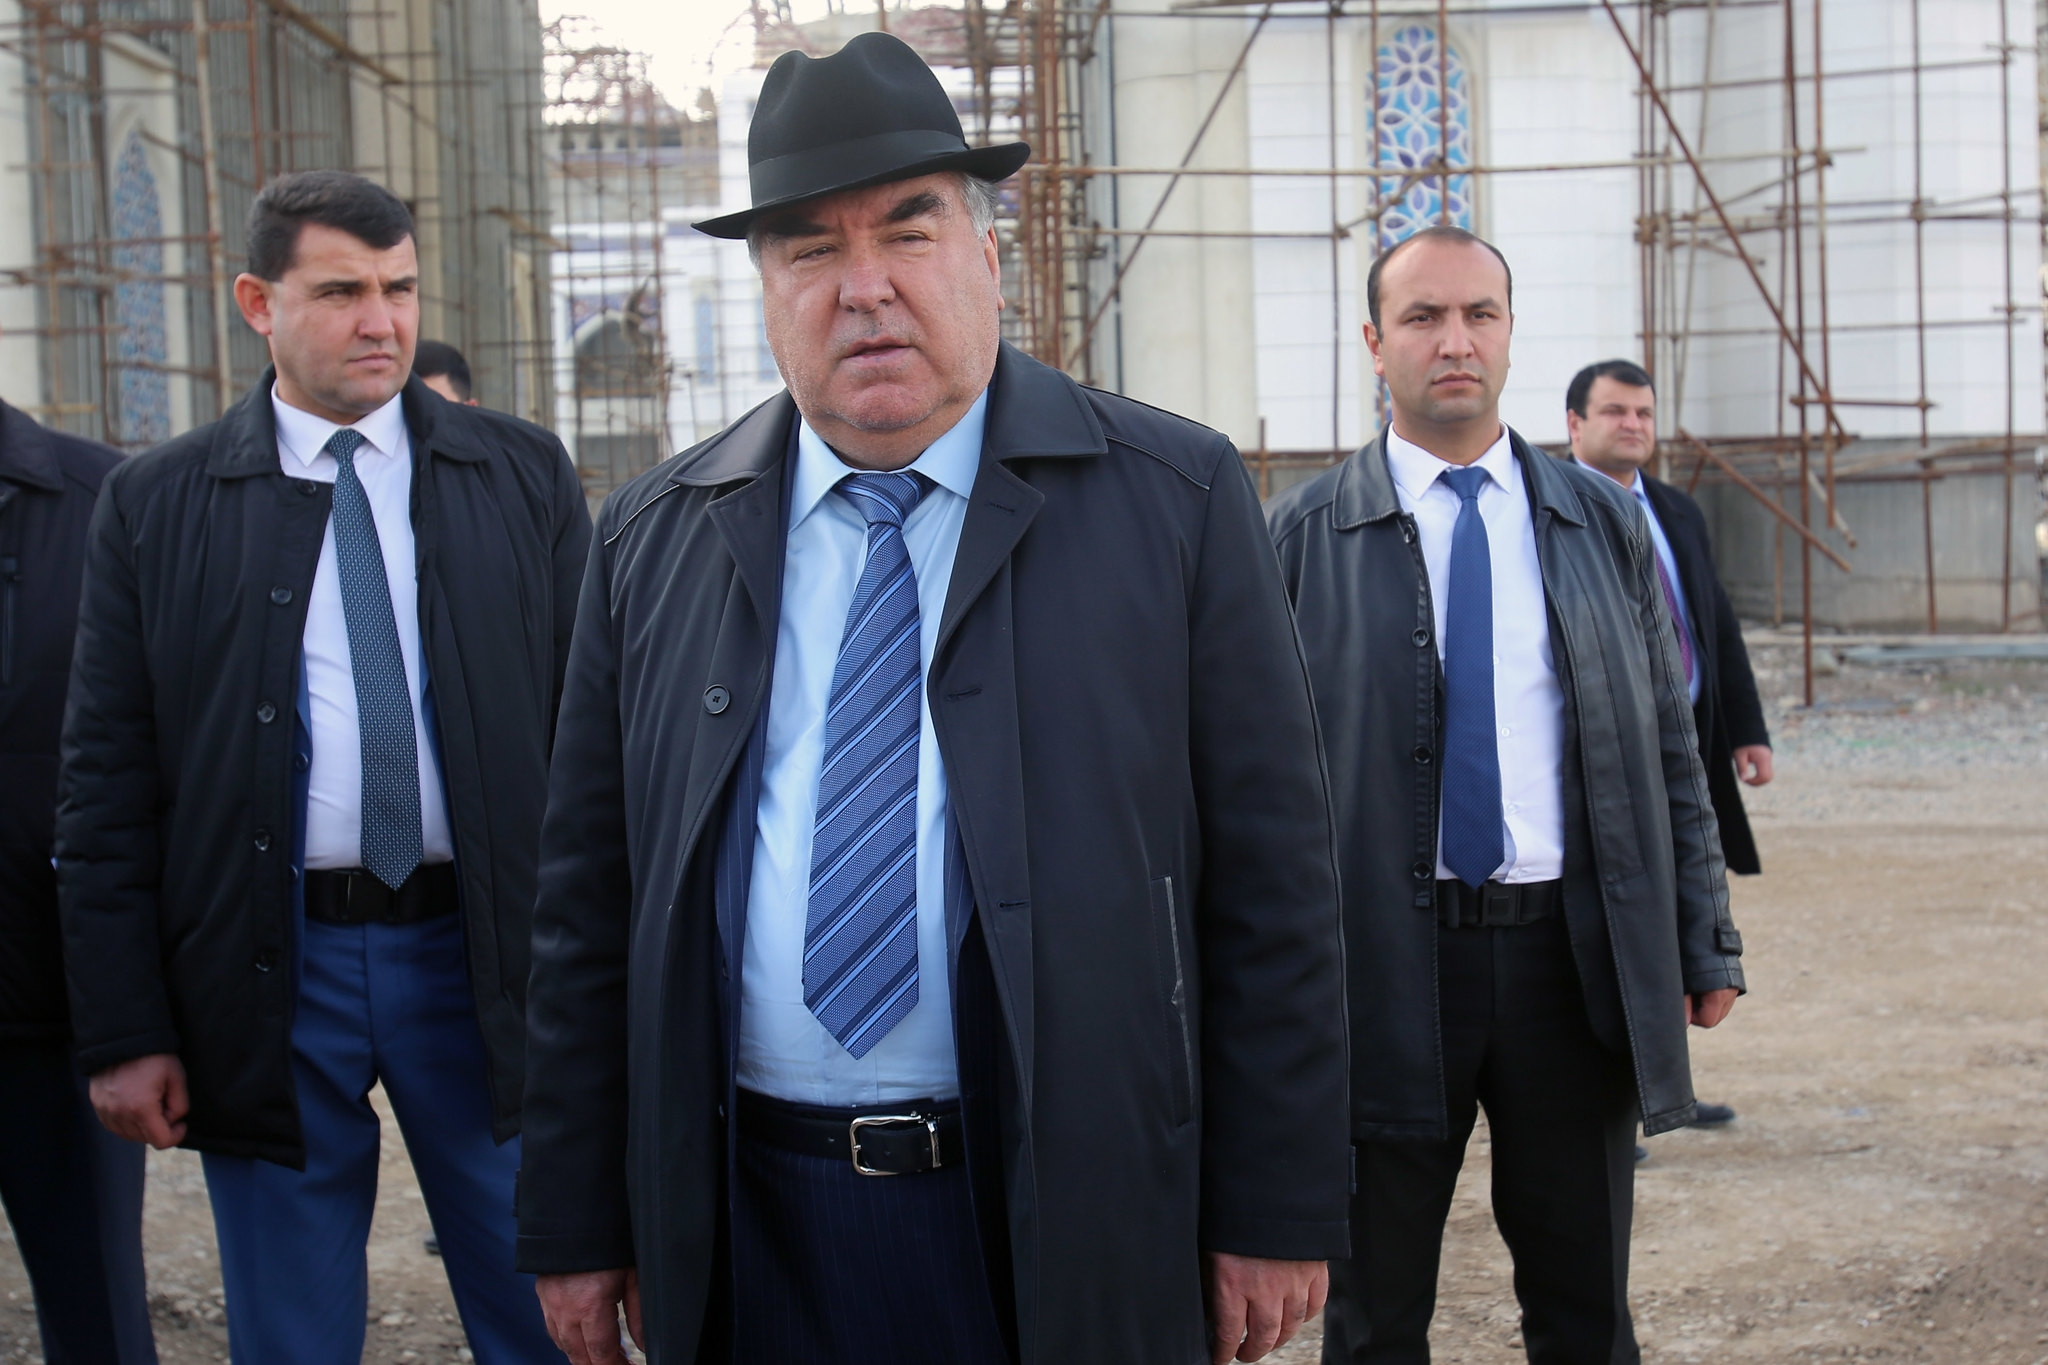 President Emomali Rahmon visiting a mosque under construction in Dushanbe in November 2018. (Photo: Presidential press service)